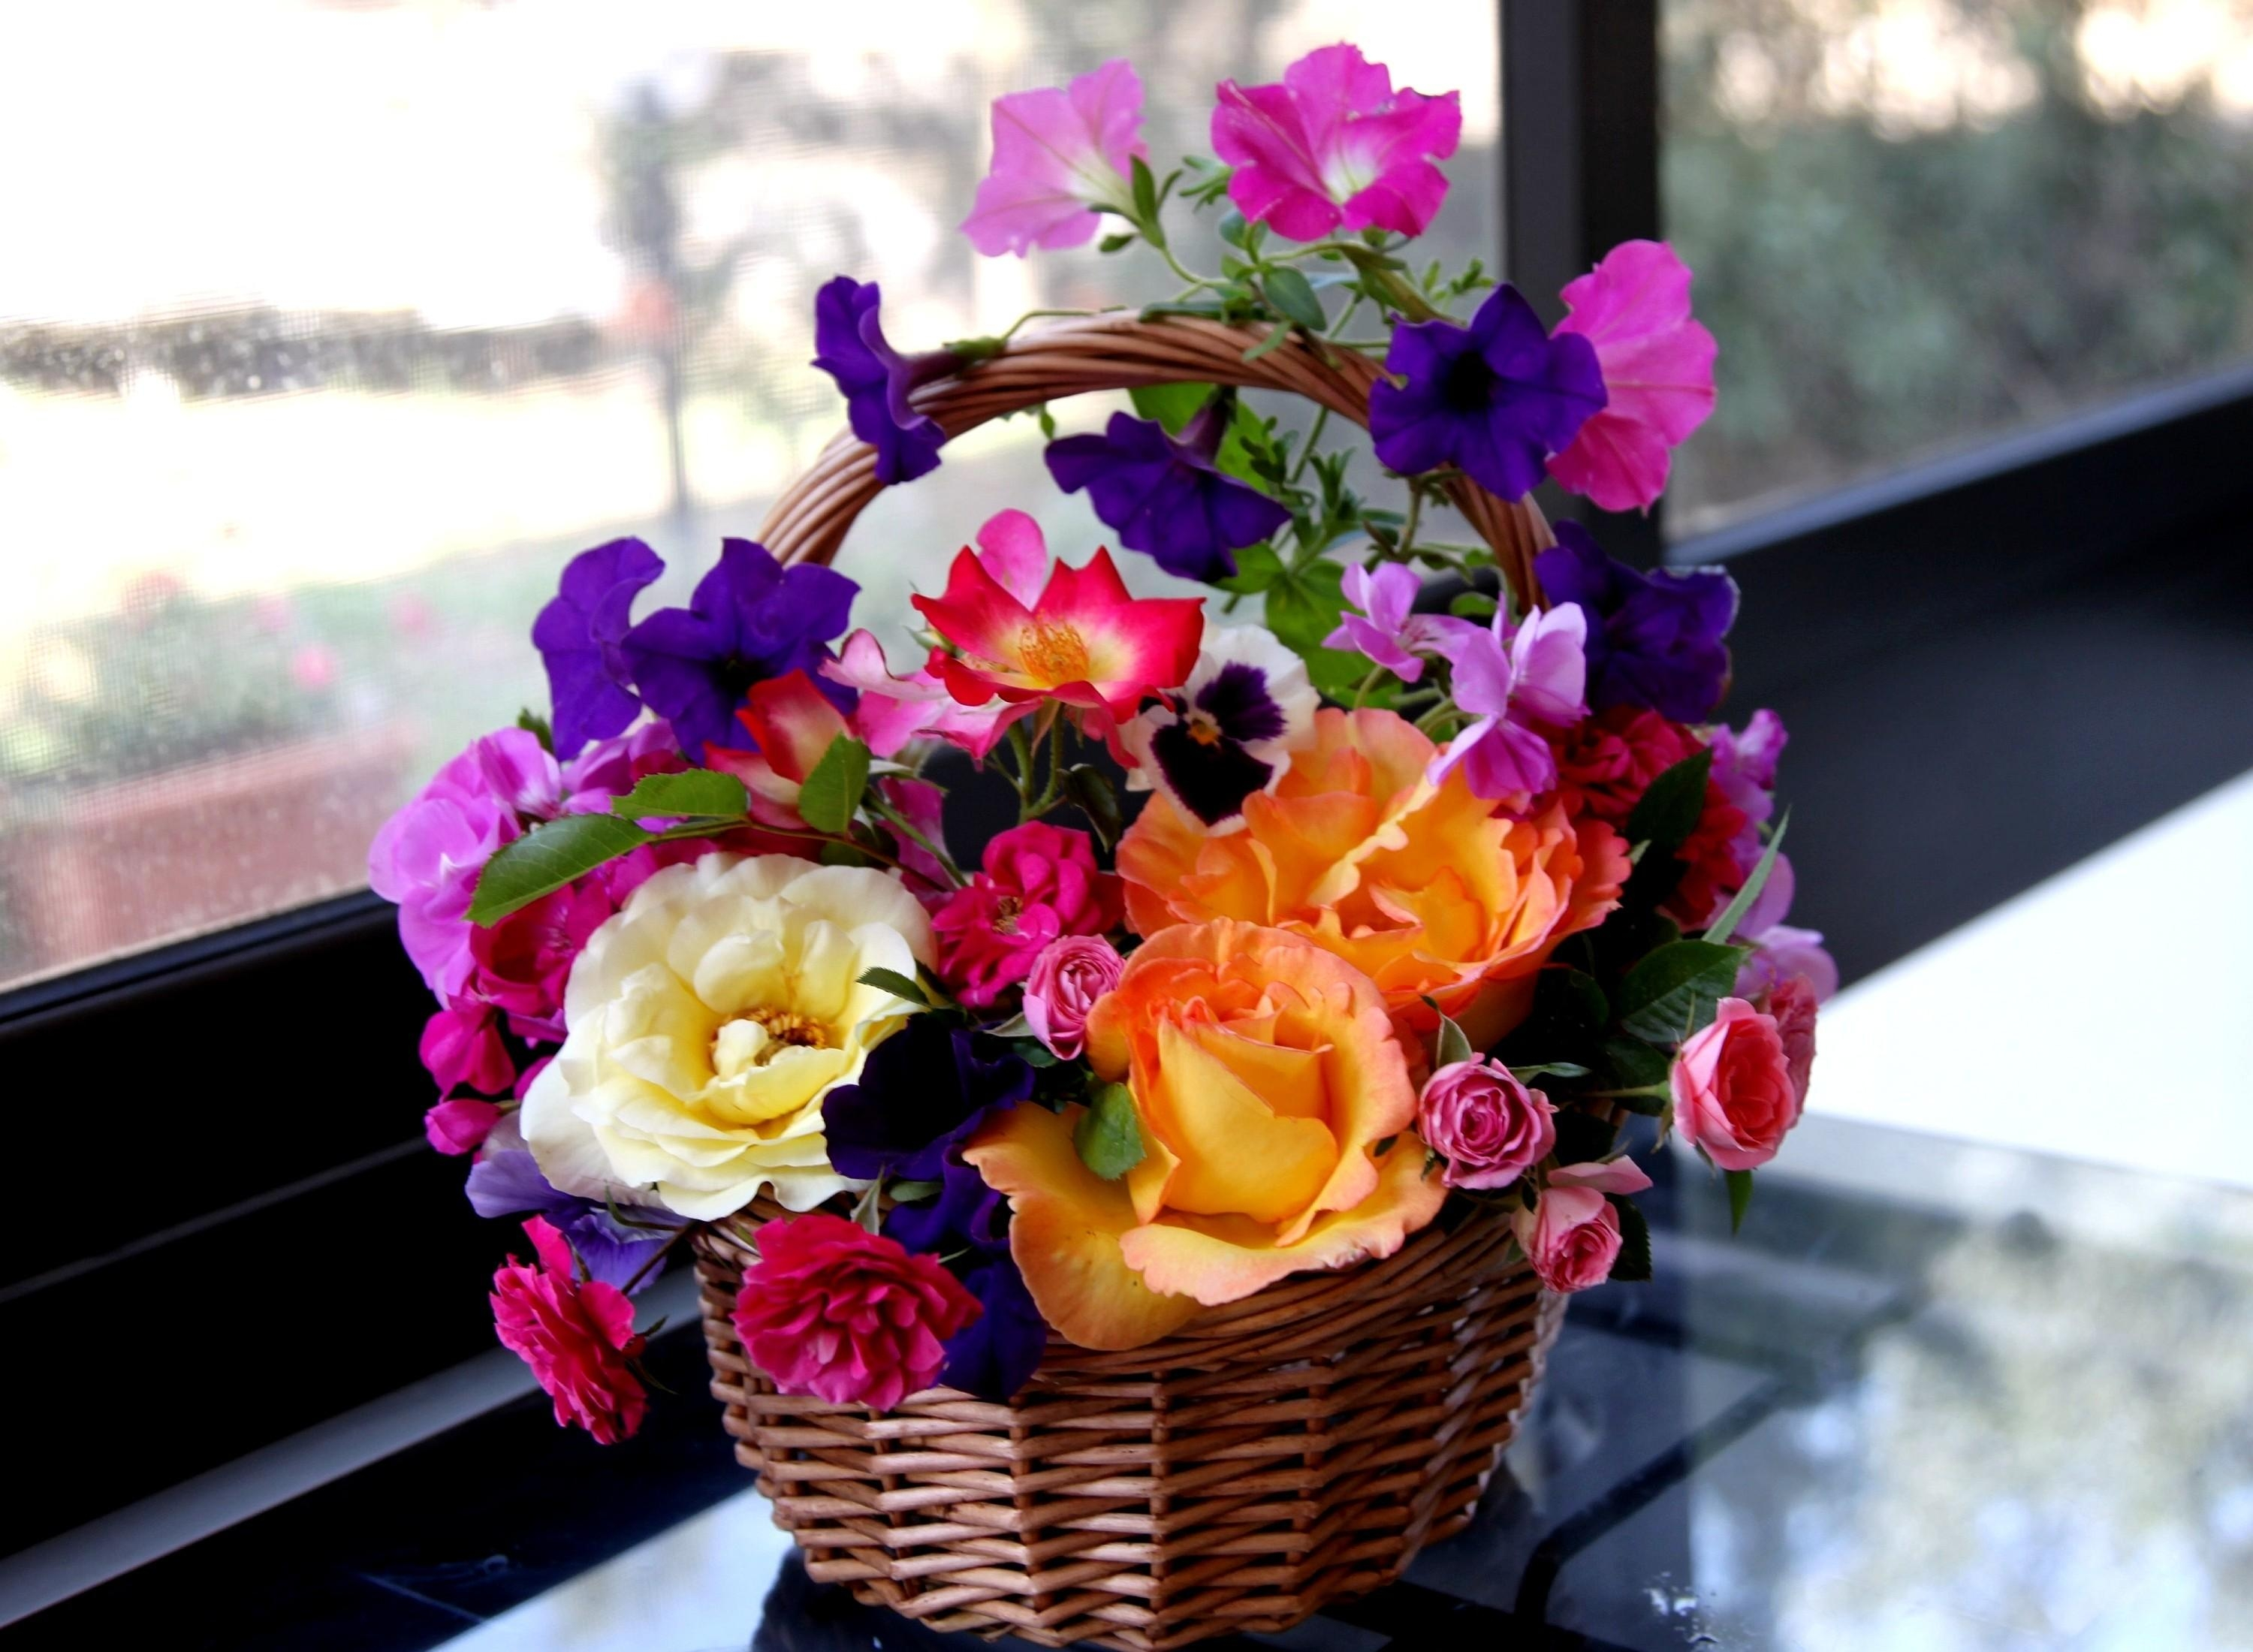 134609 download wallpaper Flowers, Roses, Pansies, Basket, Composition, Petunia screensavers and pictures for free